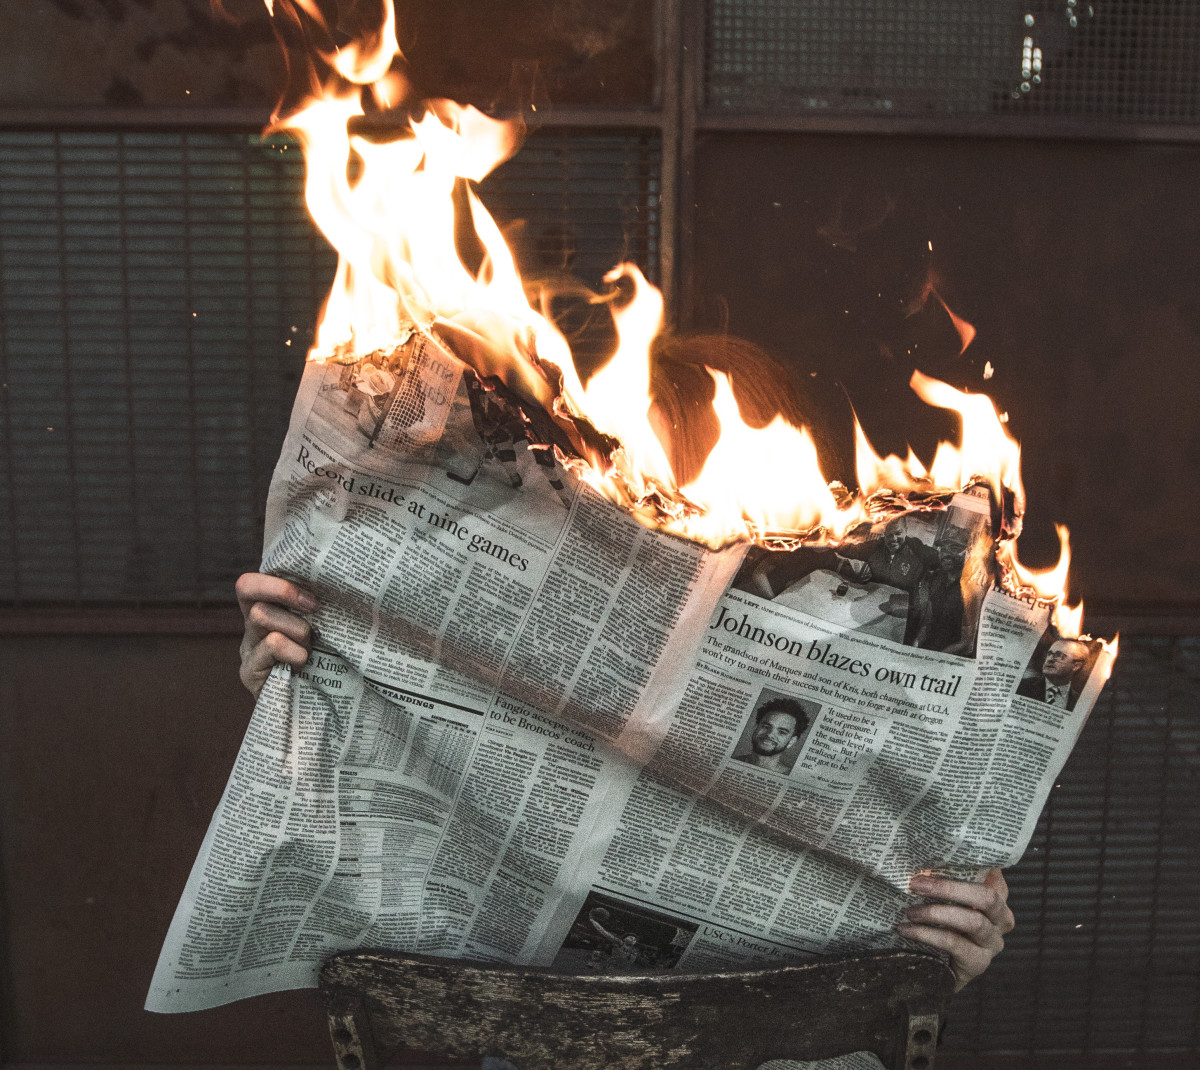 Do not get upset and burn the paper. Reporters are doing exactly the job they should be. Just keep in perspective what that job is.  Special thanks to Jeremy Bishop for his photo from Pexels.